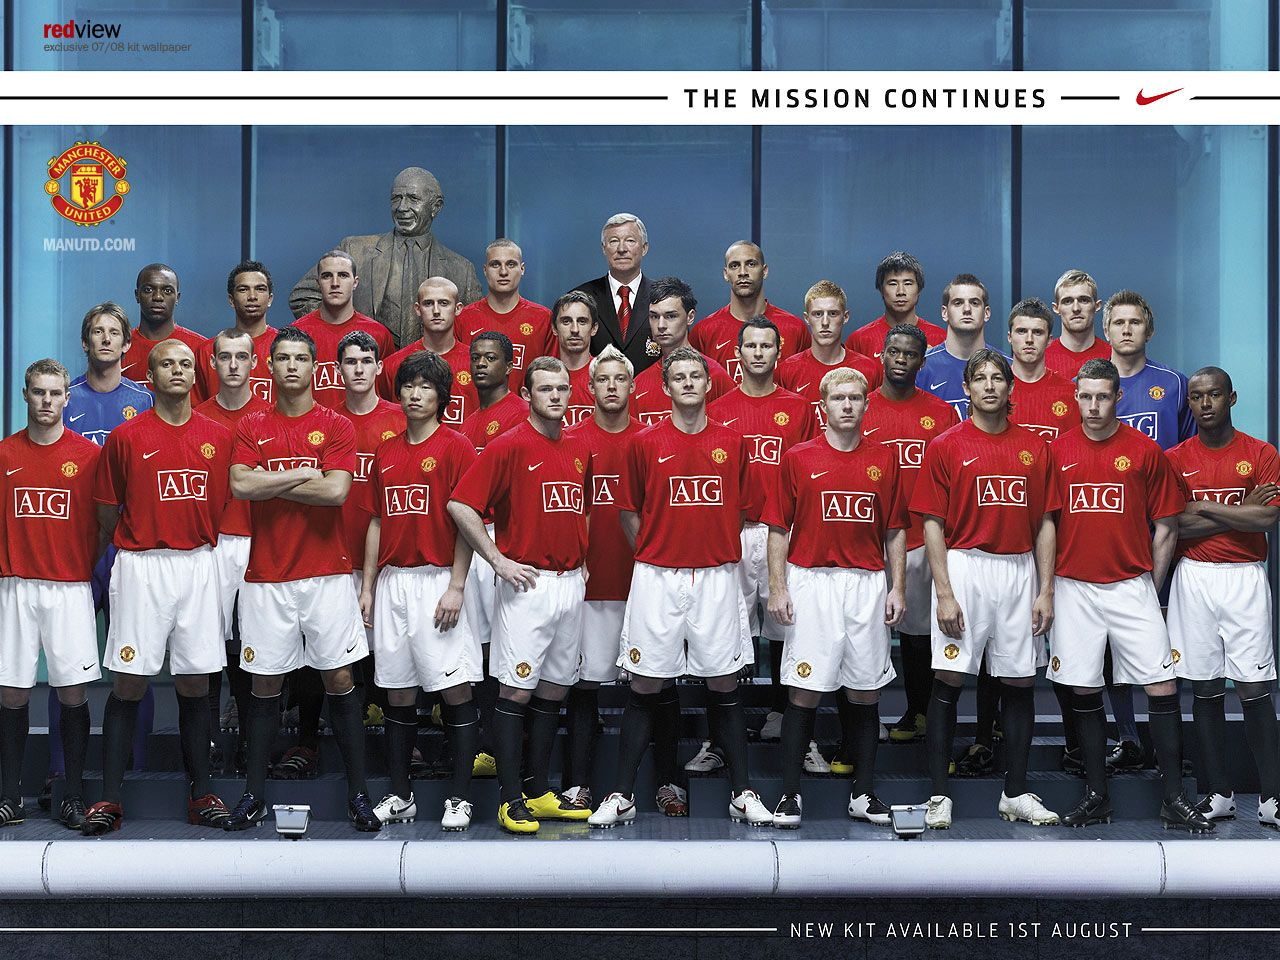 http://jagadfakta.files.wordpress.com/2011/07/manchester-united-home-kit-07-08.jpg